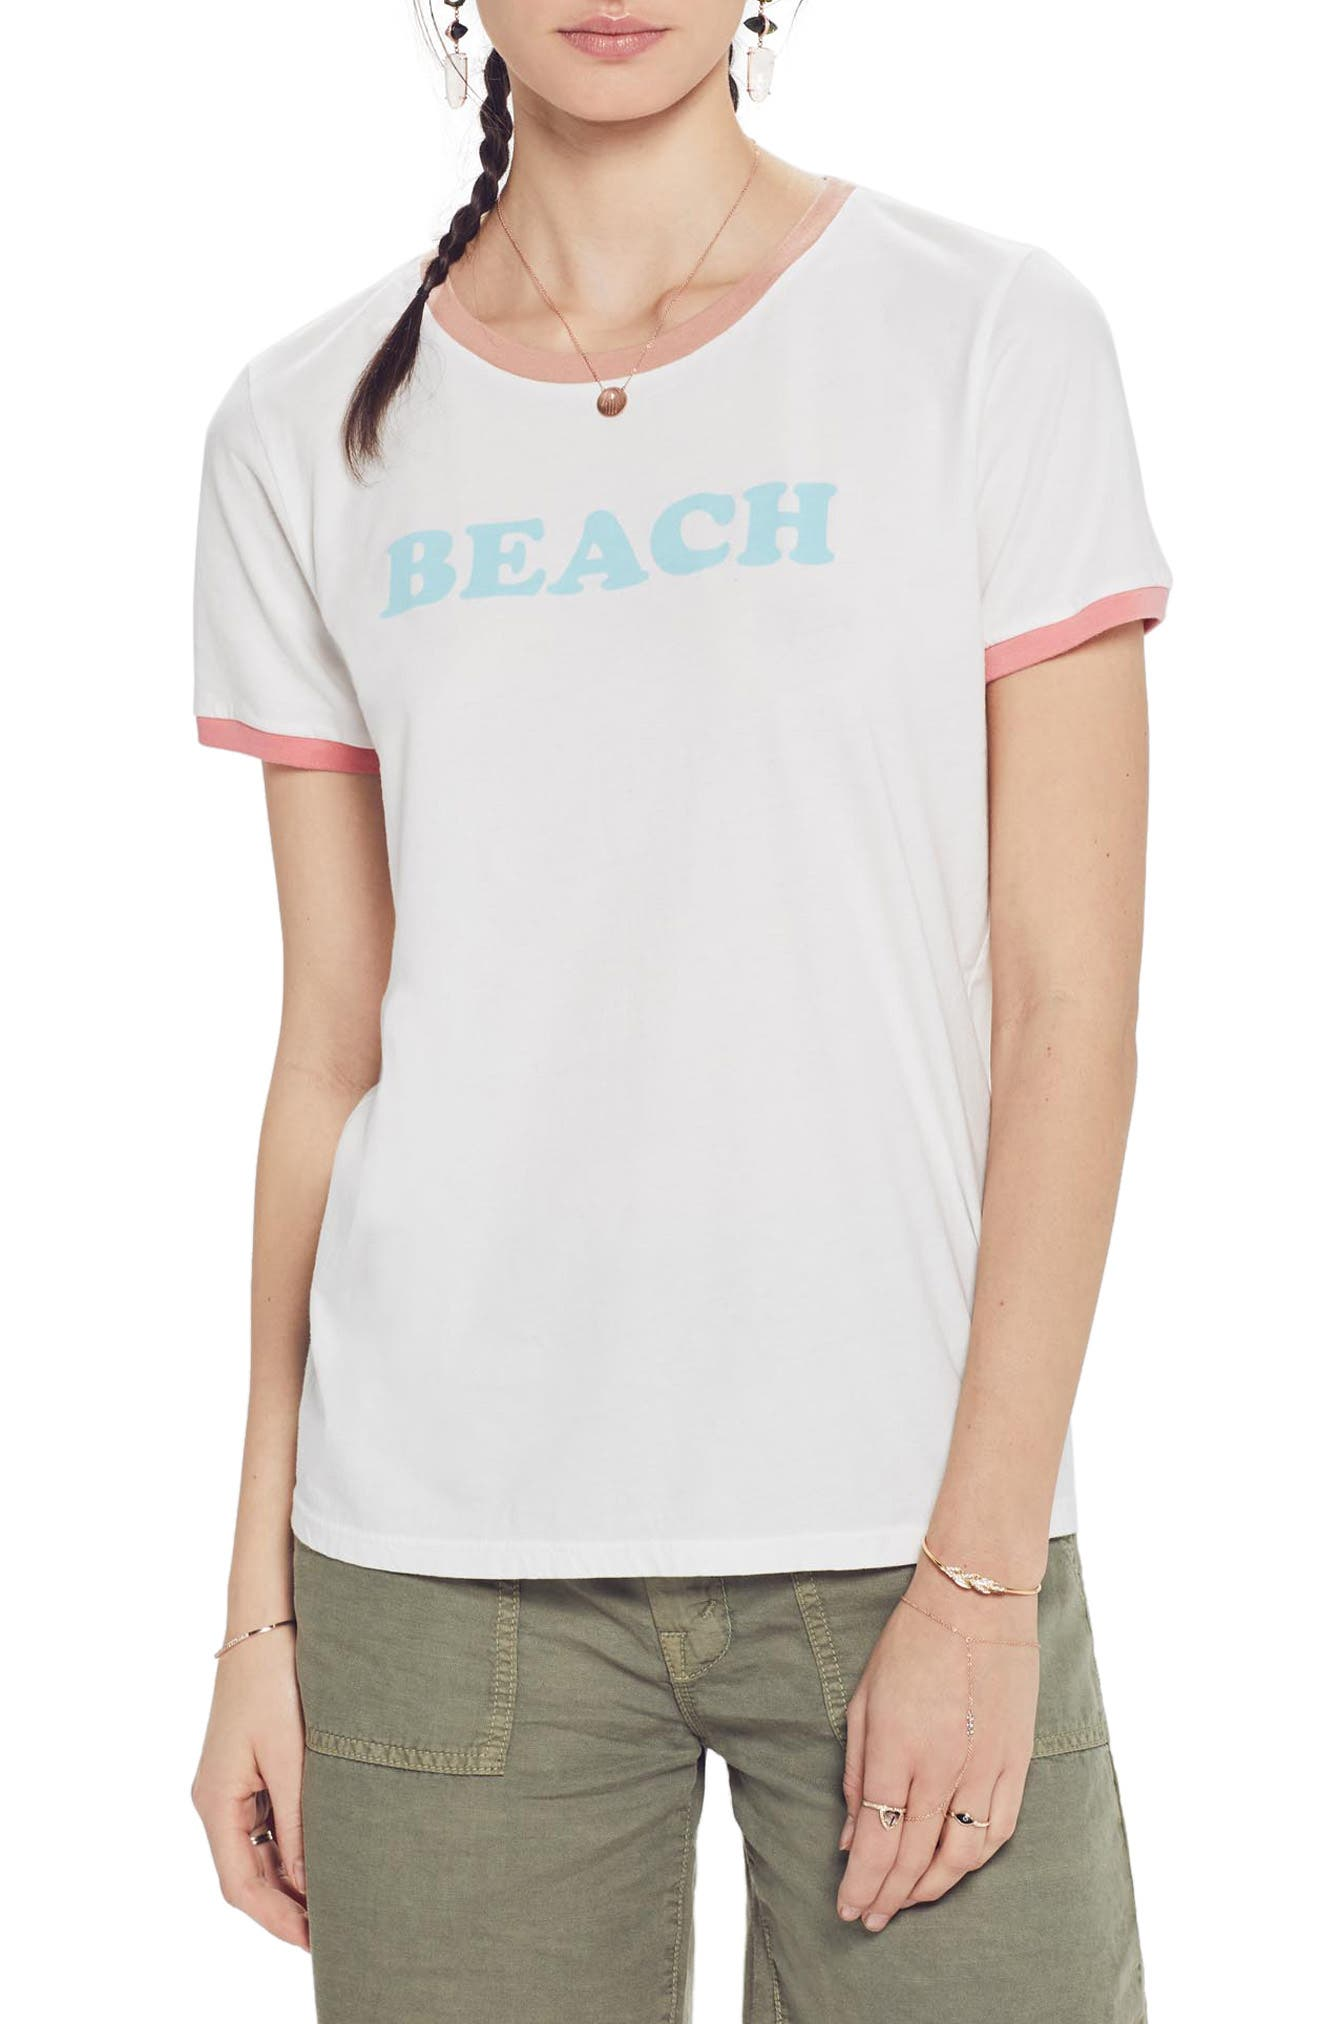 MOTHER, Itty Bitty Goodie Goodie Ringer Tee, Main thumbnail 1, color, BEACH